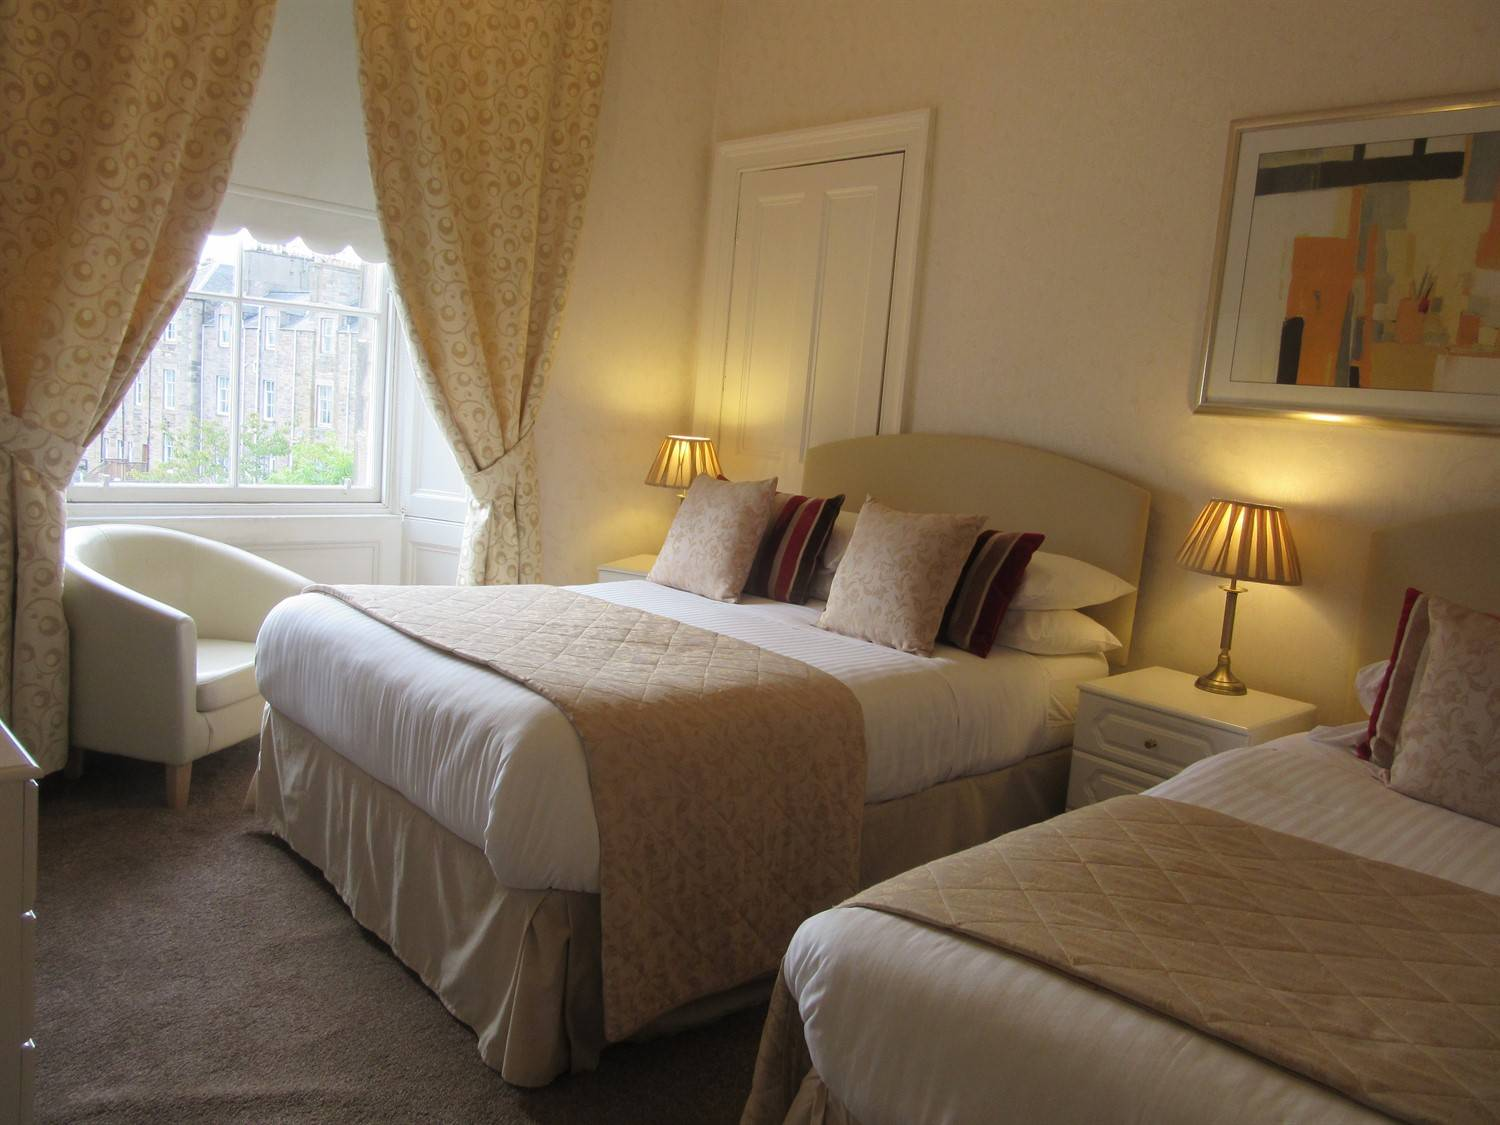 View our comfortable Rooms at Sonas Guest house Edinburgh